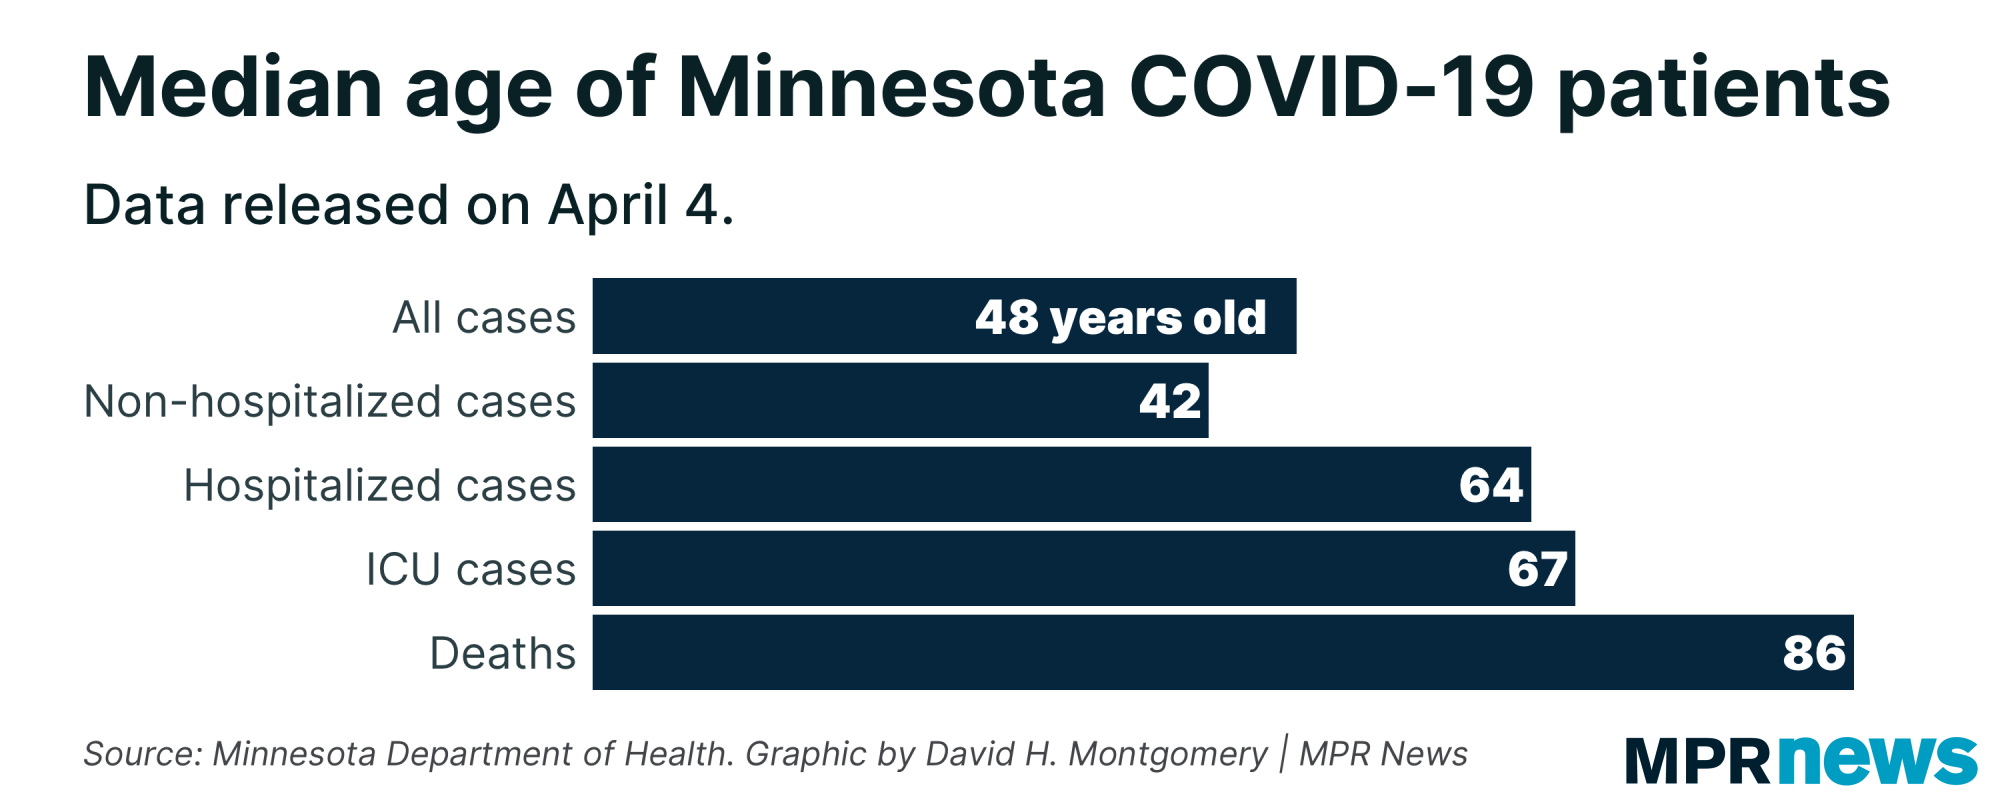 A graph showing the median age of Minnesota COVID-19 patients